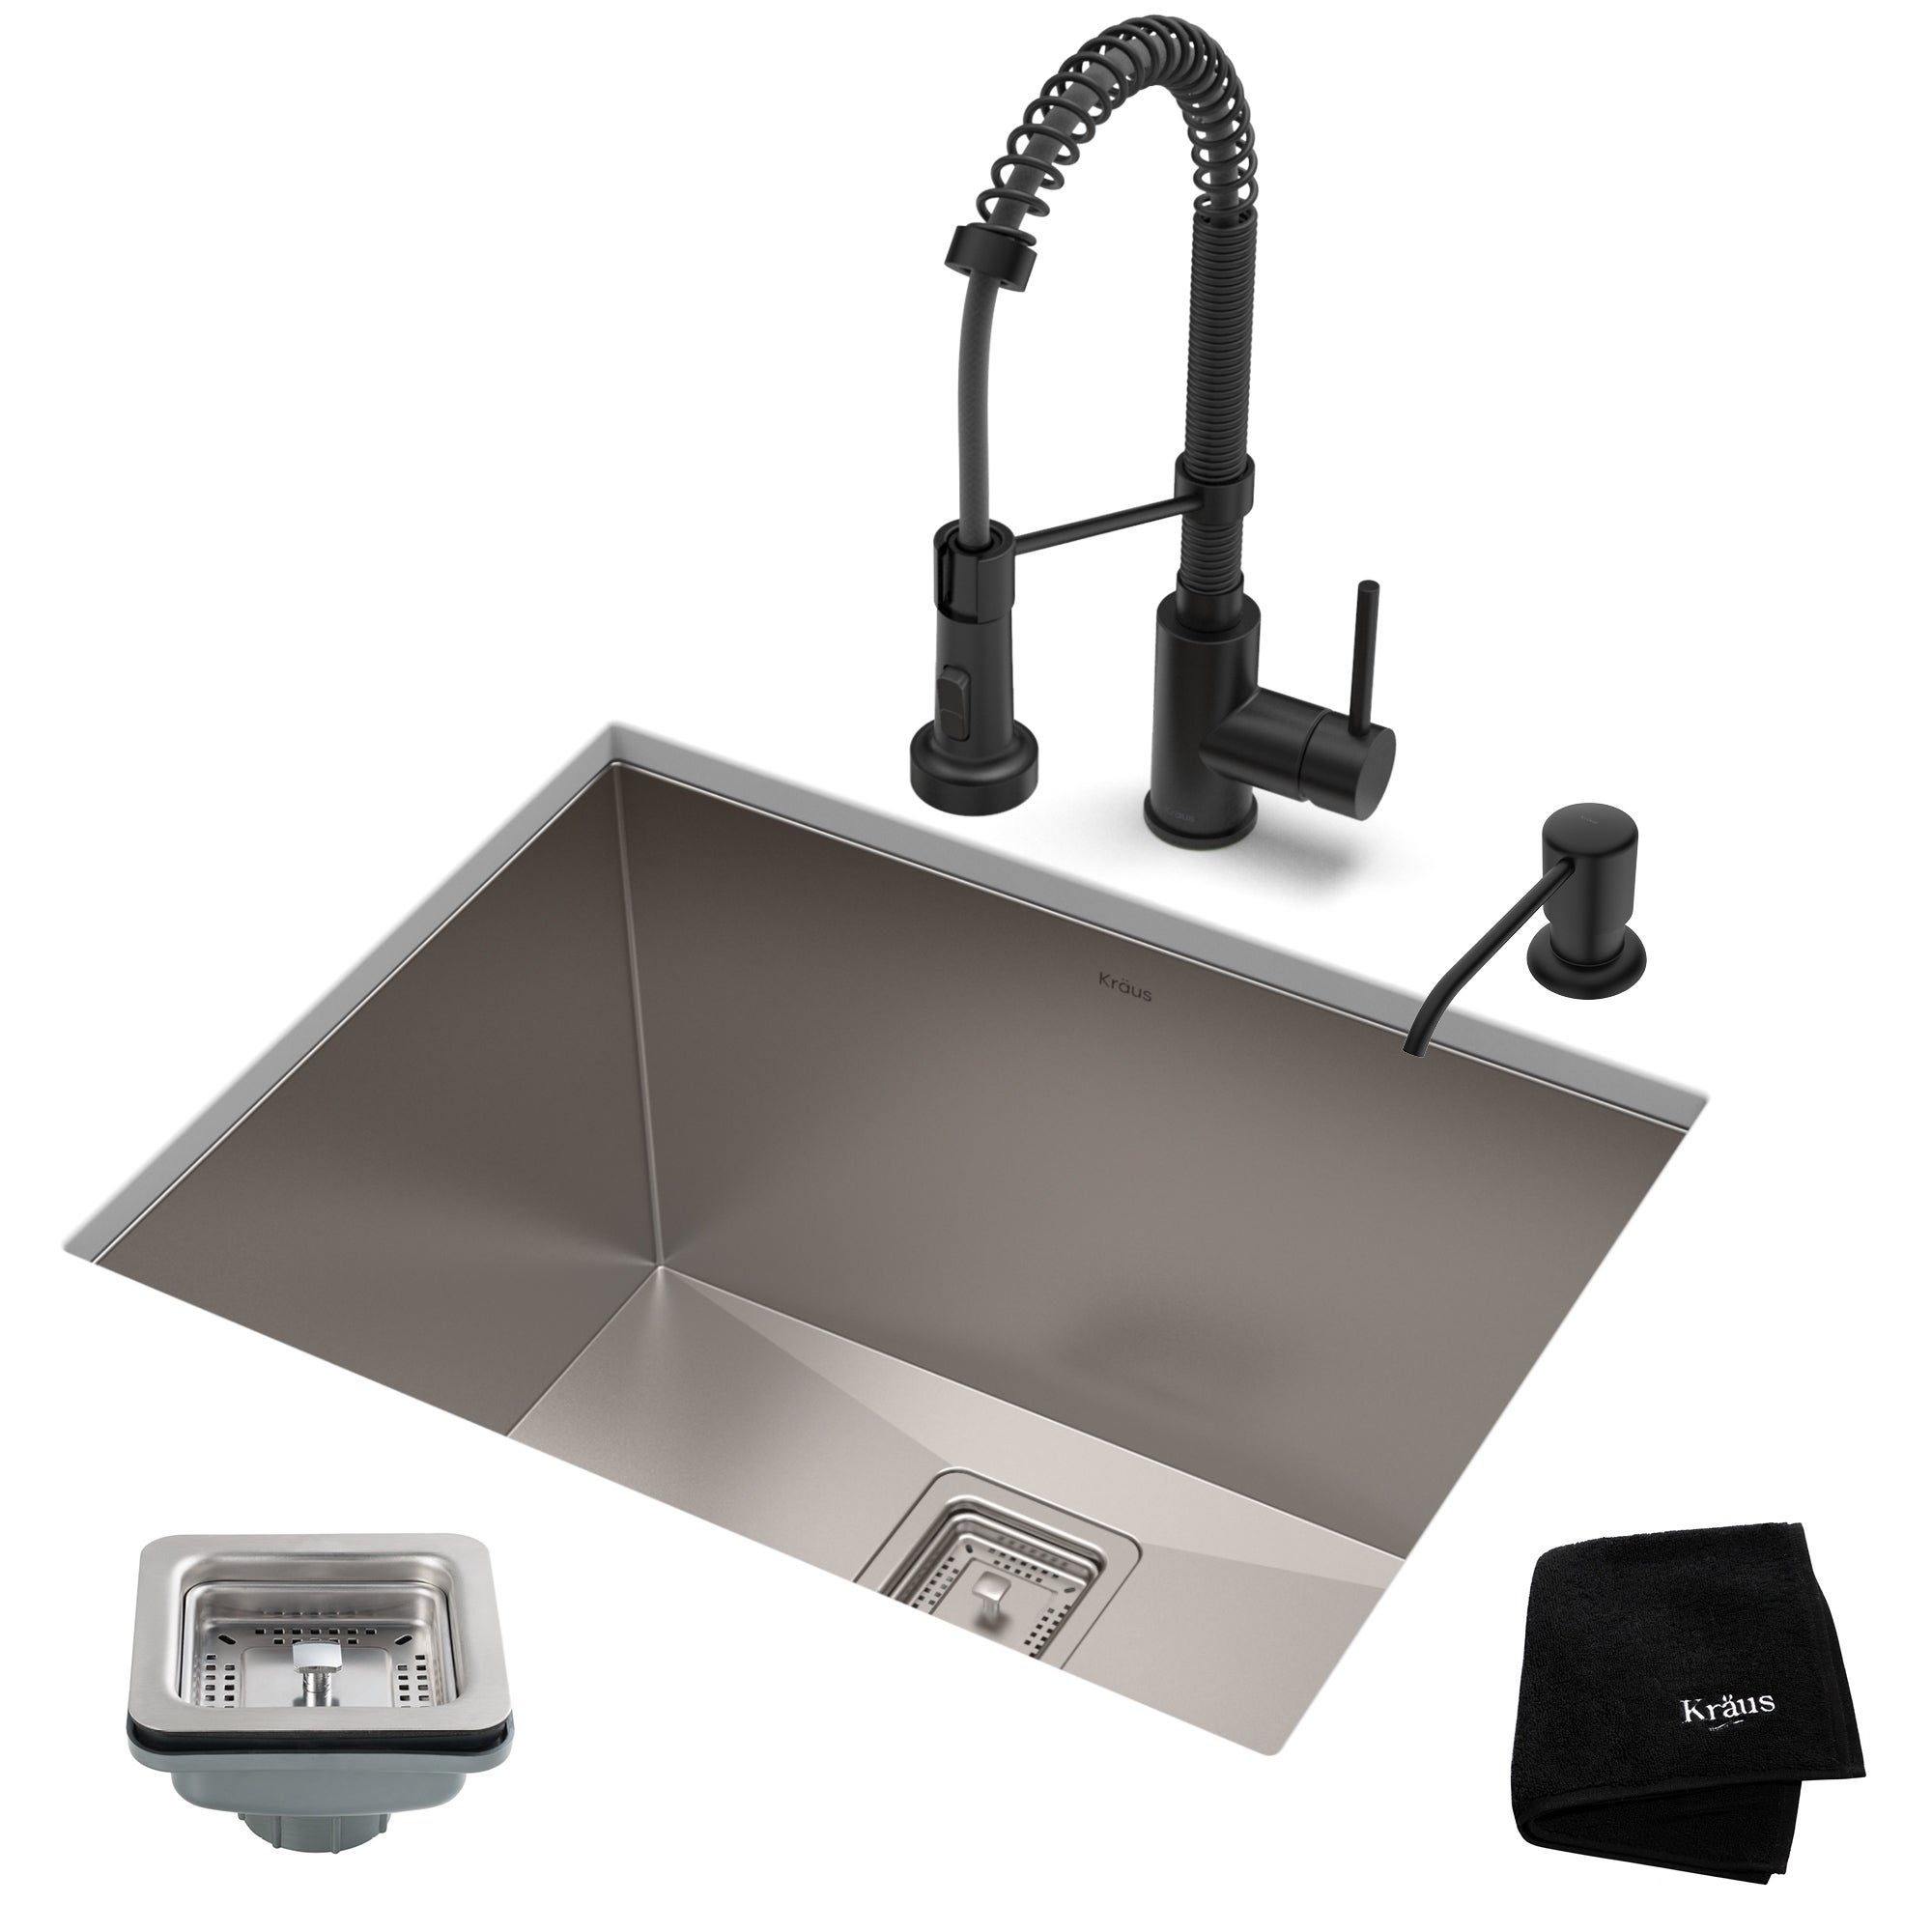 Details about Kraus 24-inch Stainless Steel Kitchen Sink, Faucet, Soap